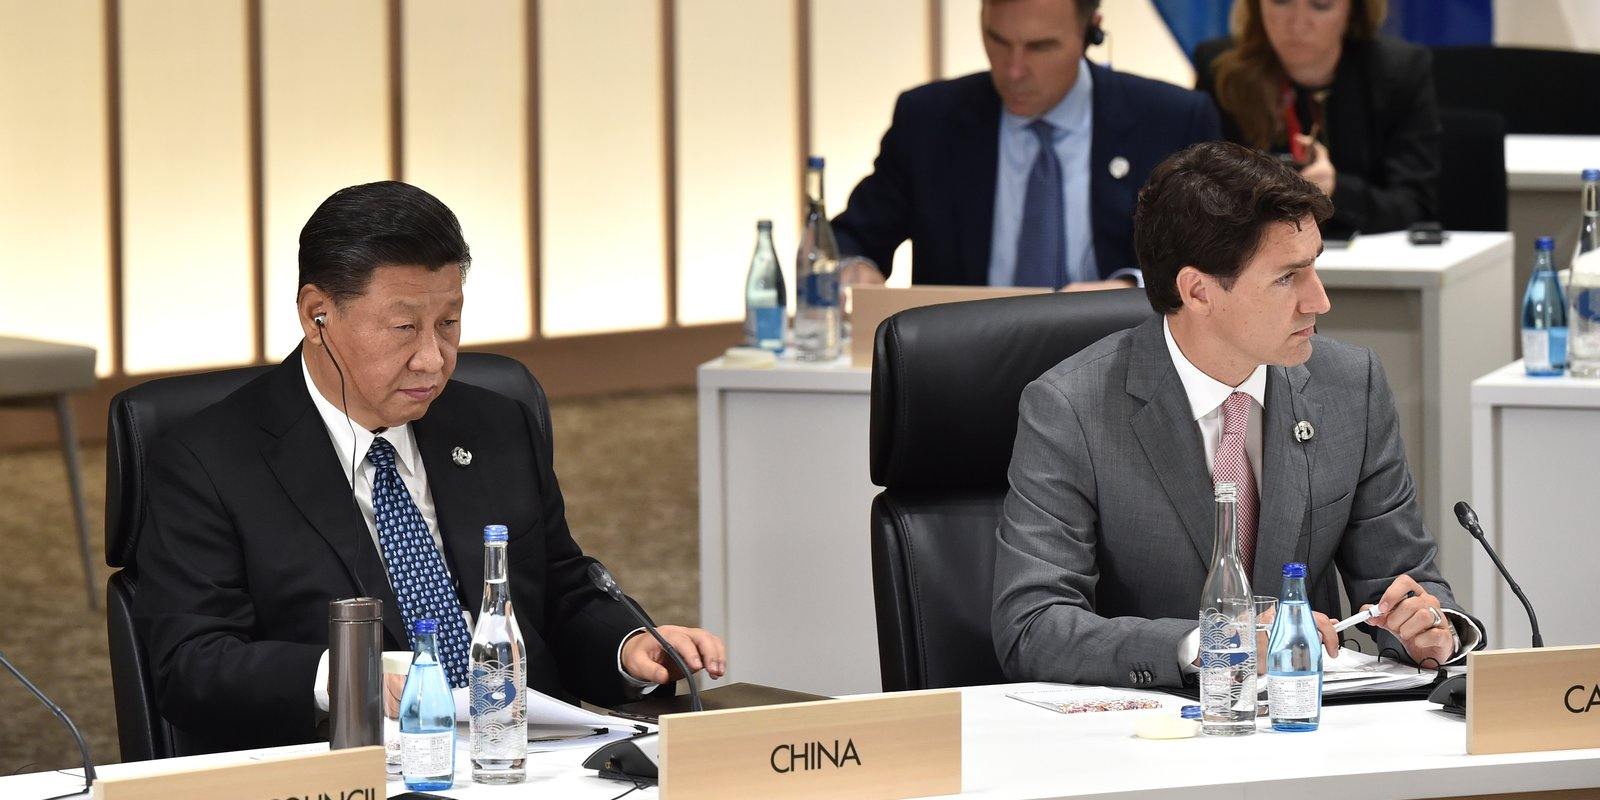 China's President Xi Jinping and Canada's Prime Minister Justin Trudeau attend a session on women's workforce participation, future of work and aging societies at the G20 Summit on 29 June 2019 in Osaka, Japan. Photo: Getty Images.